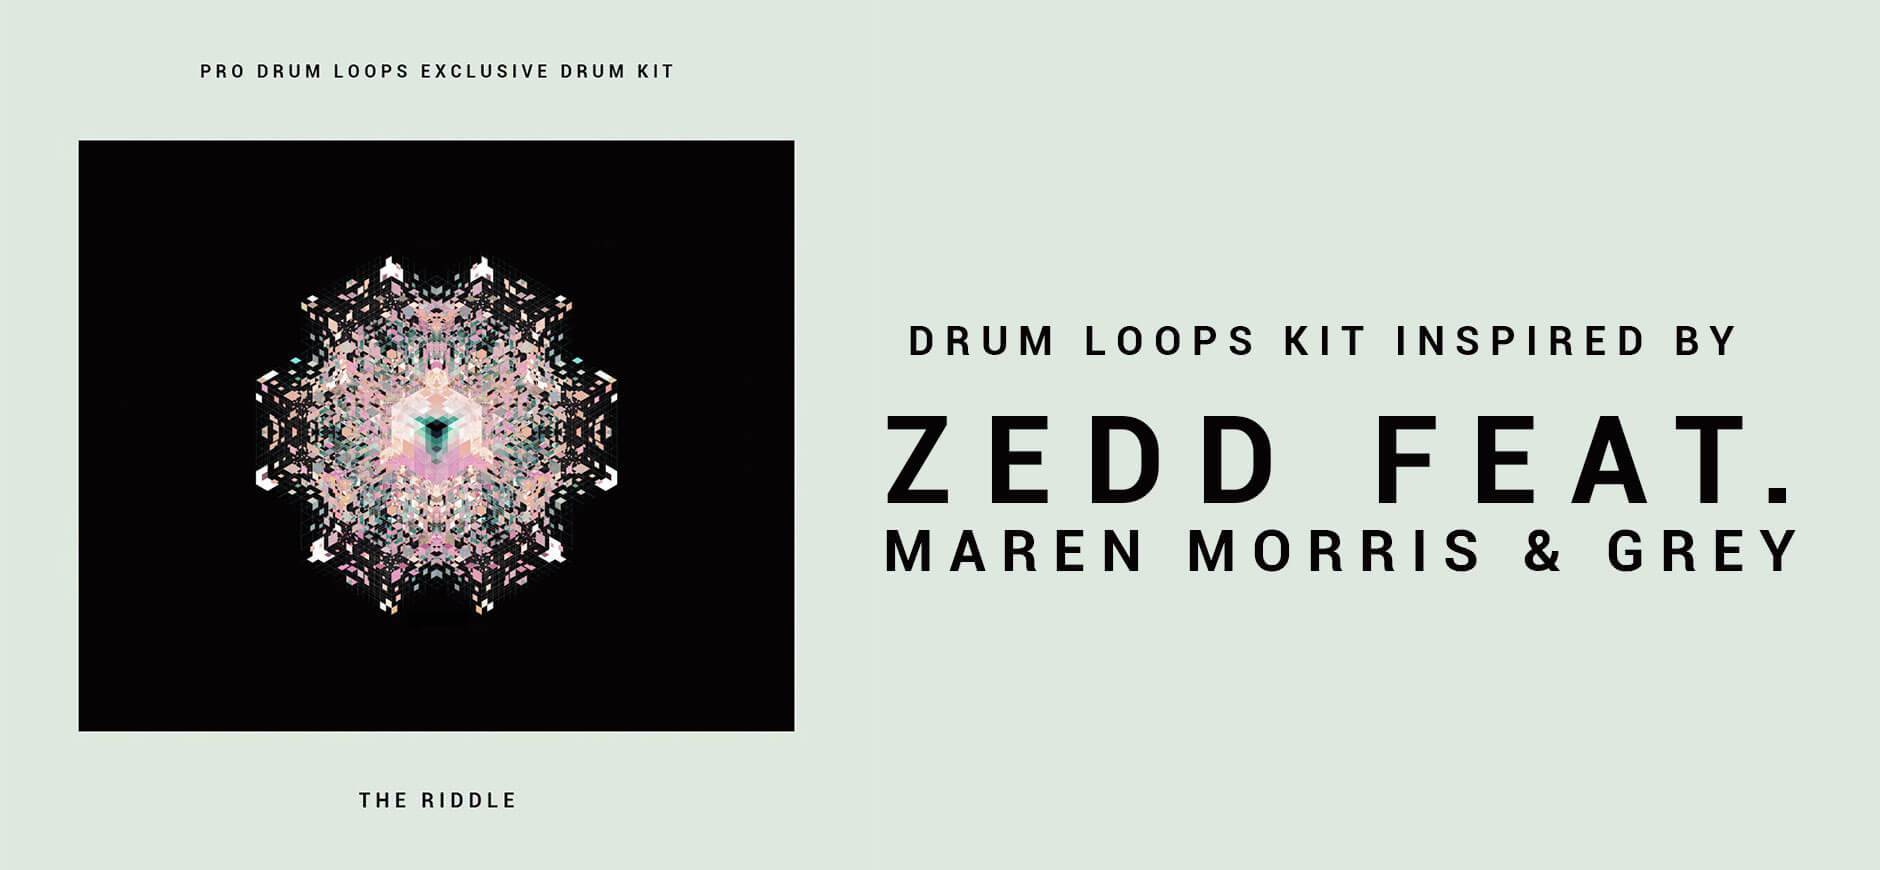 The Middle Drum Loops Kit Inspired by Zedd